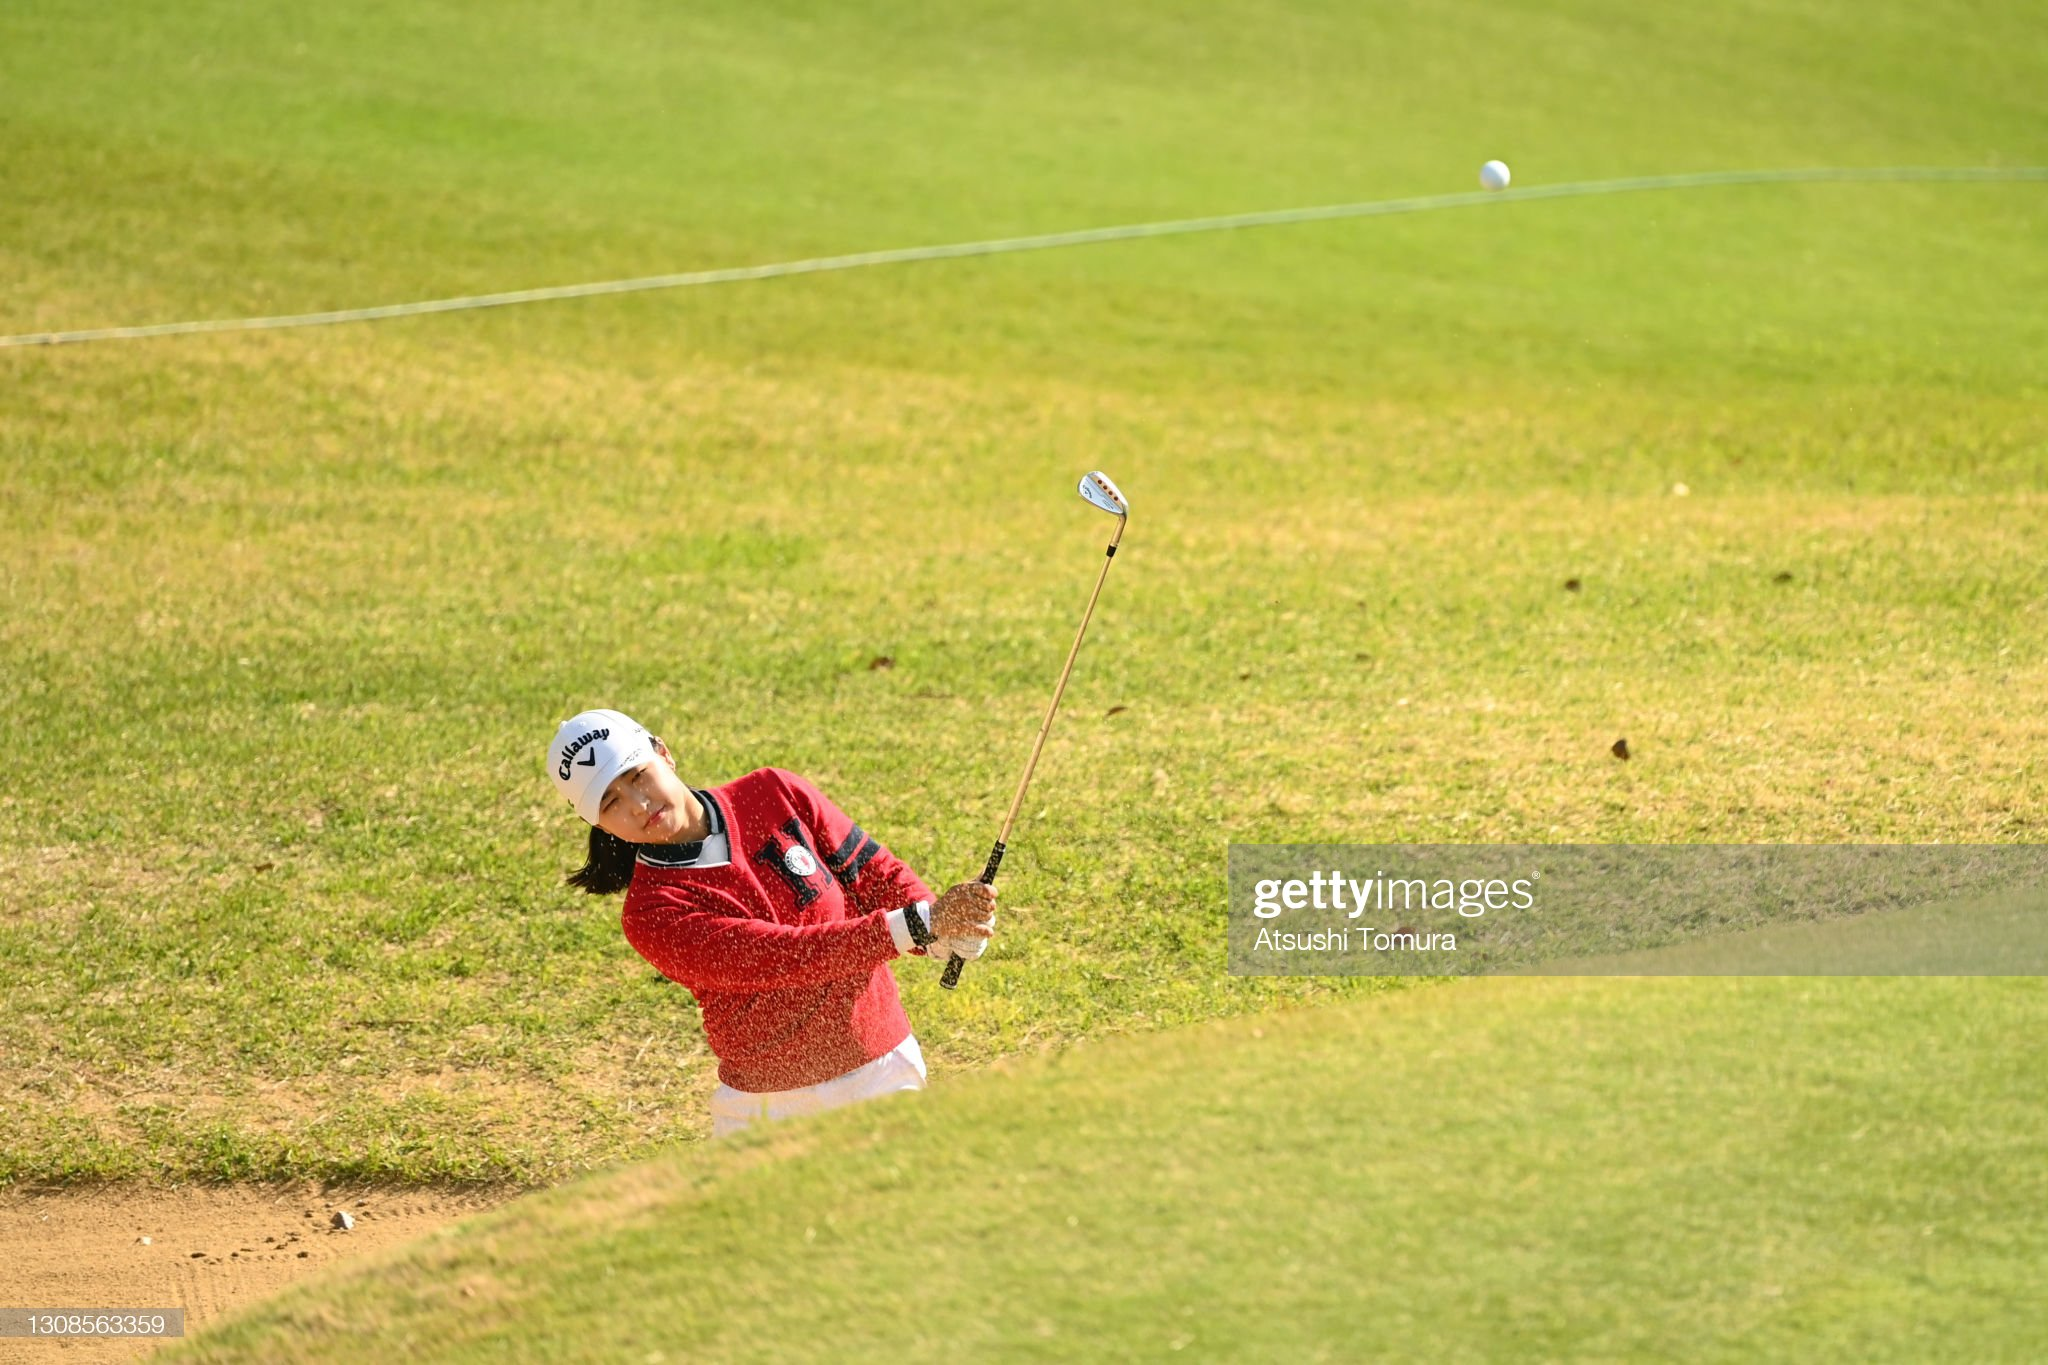 https://media.gettyimages.com/photos/hana-lee-of-south-korea-hits-out-from-a-bunker-on-the-18th-hole-the-picture-id1308563359?s=2048x2048